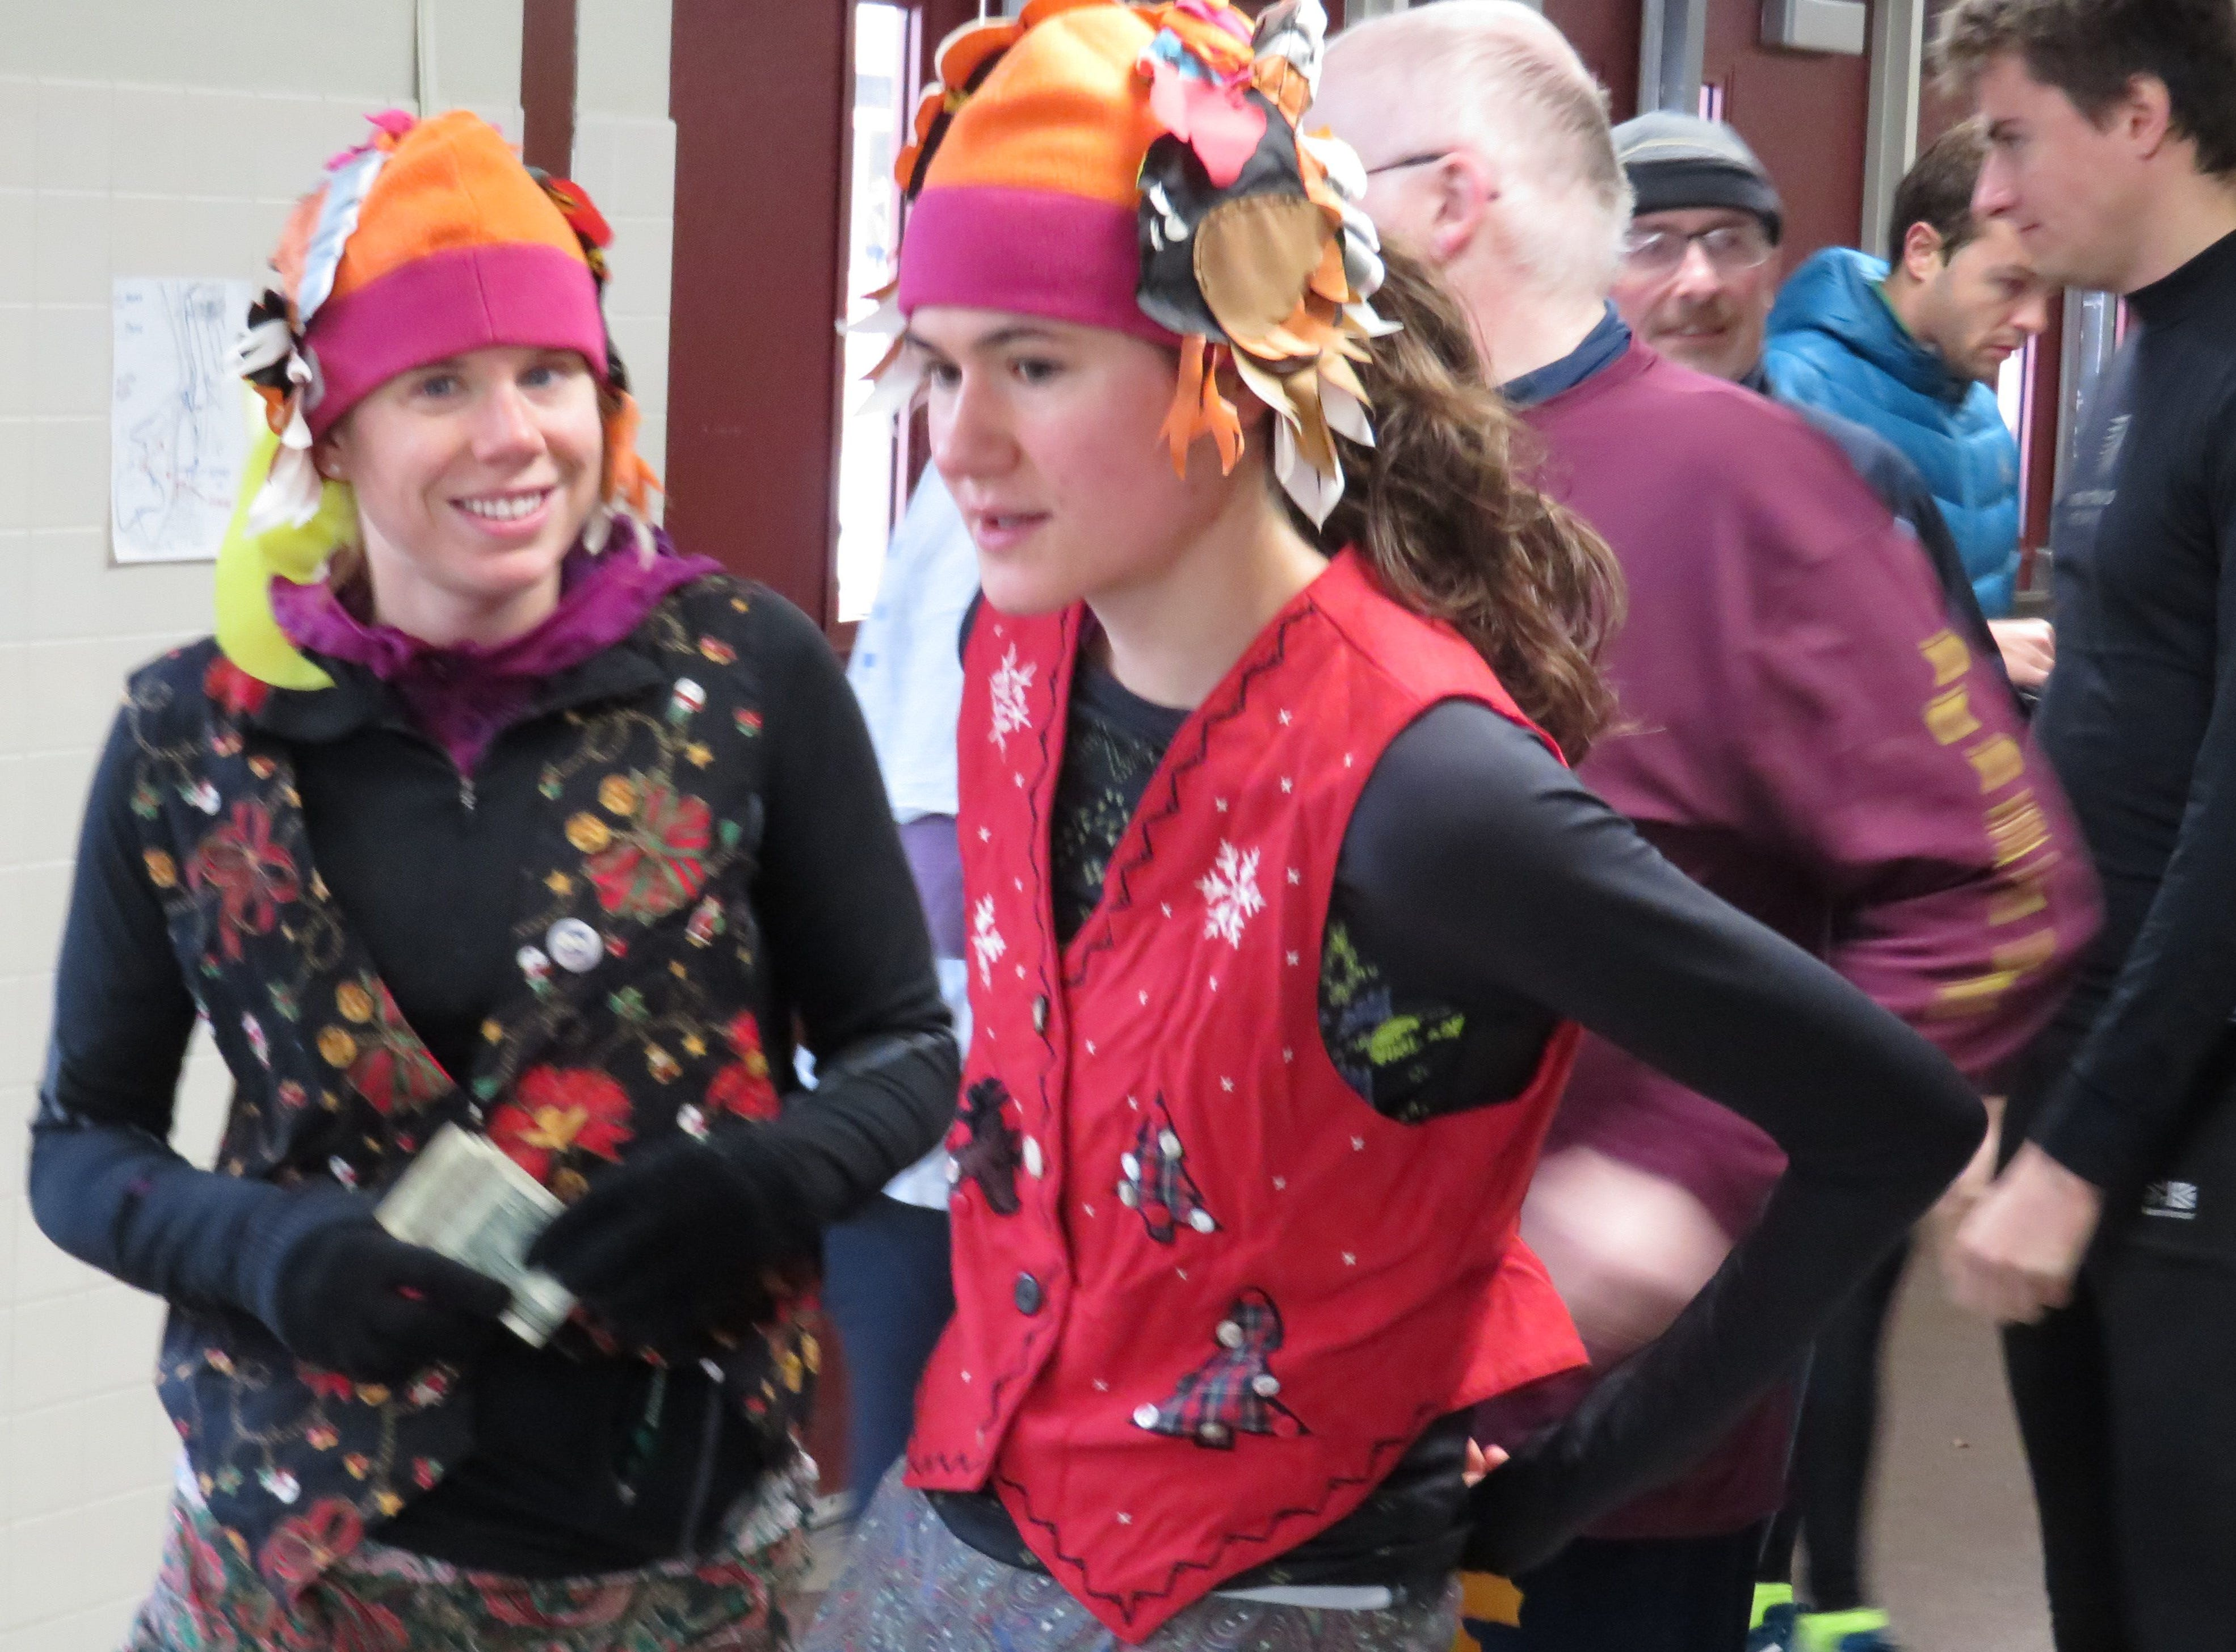 From 2017: Bonnie Patcher, left, and Heather Guetterram dressed festively for the Turkey Trot.